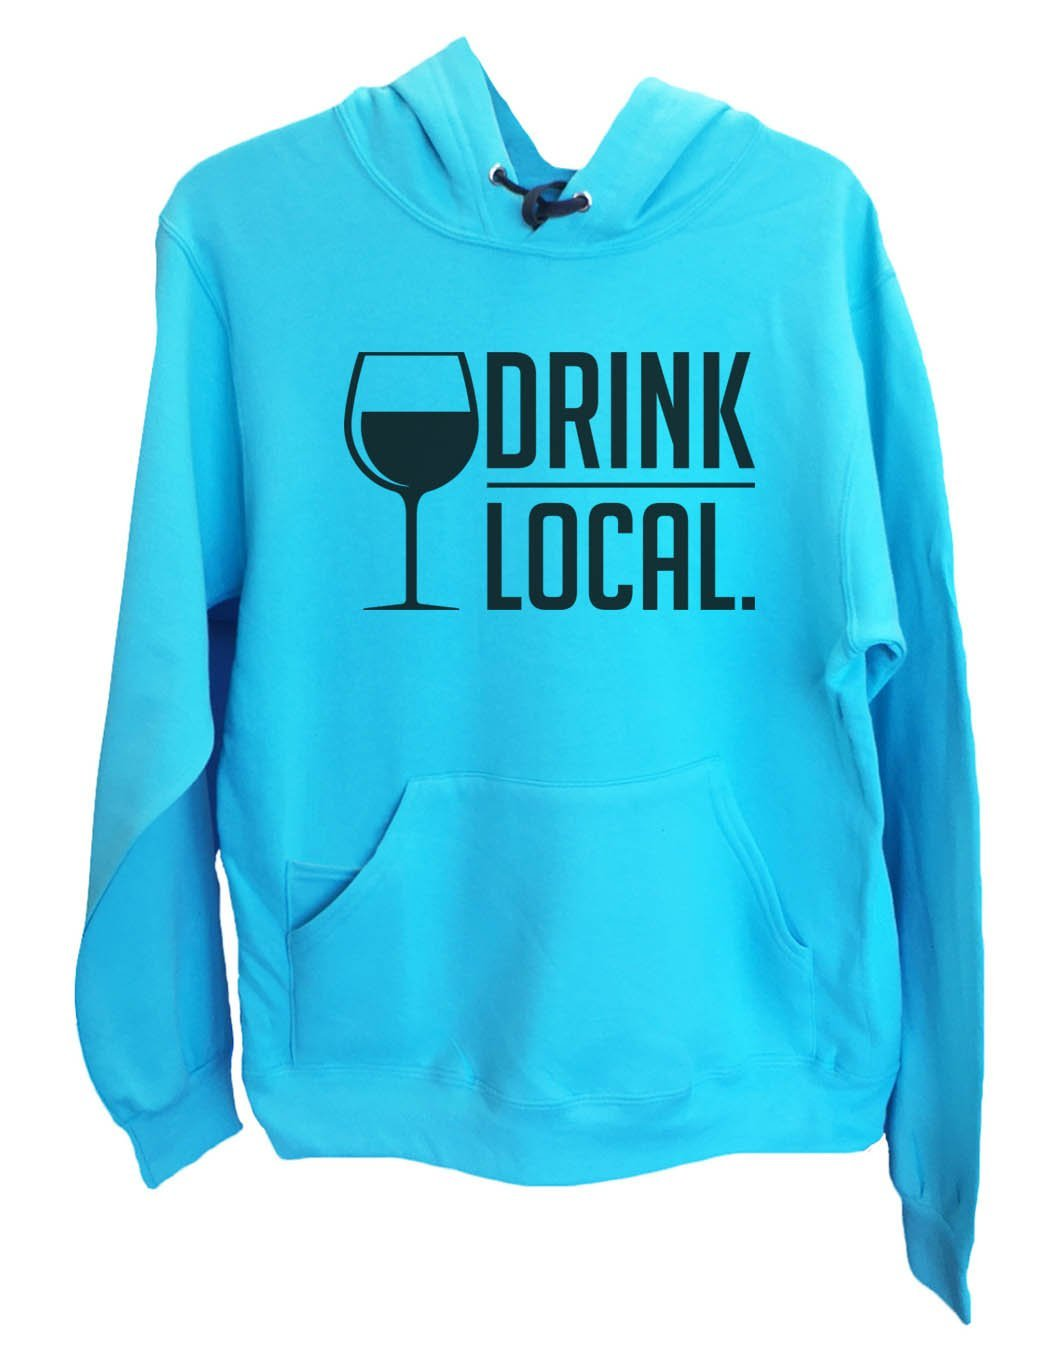 UNISEX HOODIE - Drink Local. - FUNNY MENS AND WOMENS HOODED SWEATSHIRTS - 2157 Funny Shirt Small / Turquoise